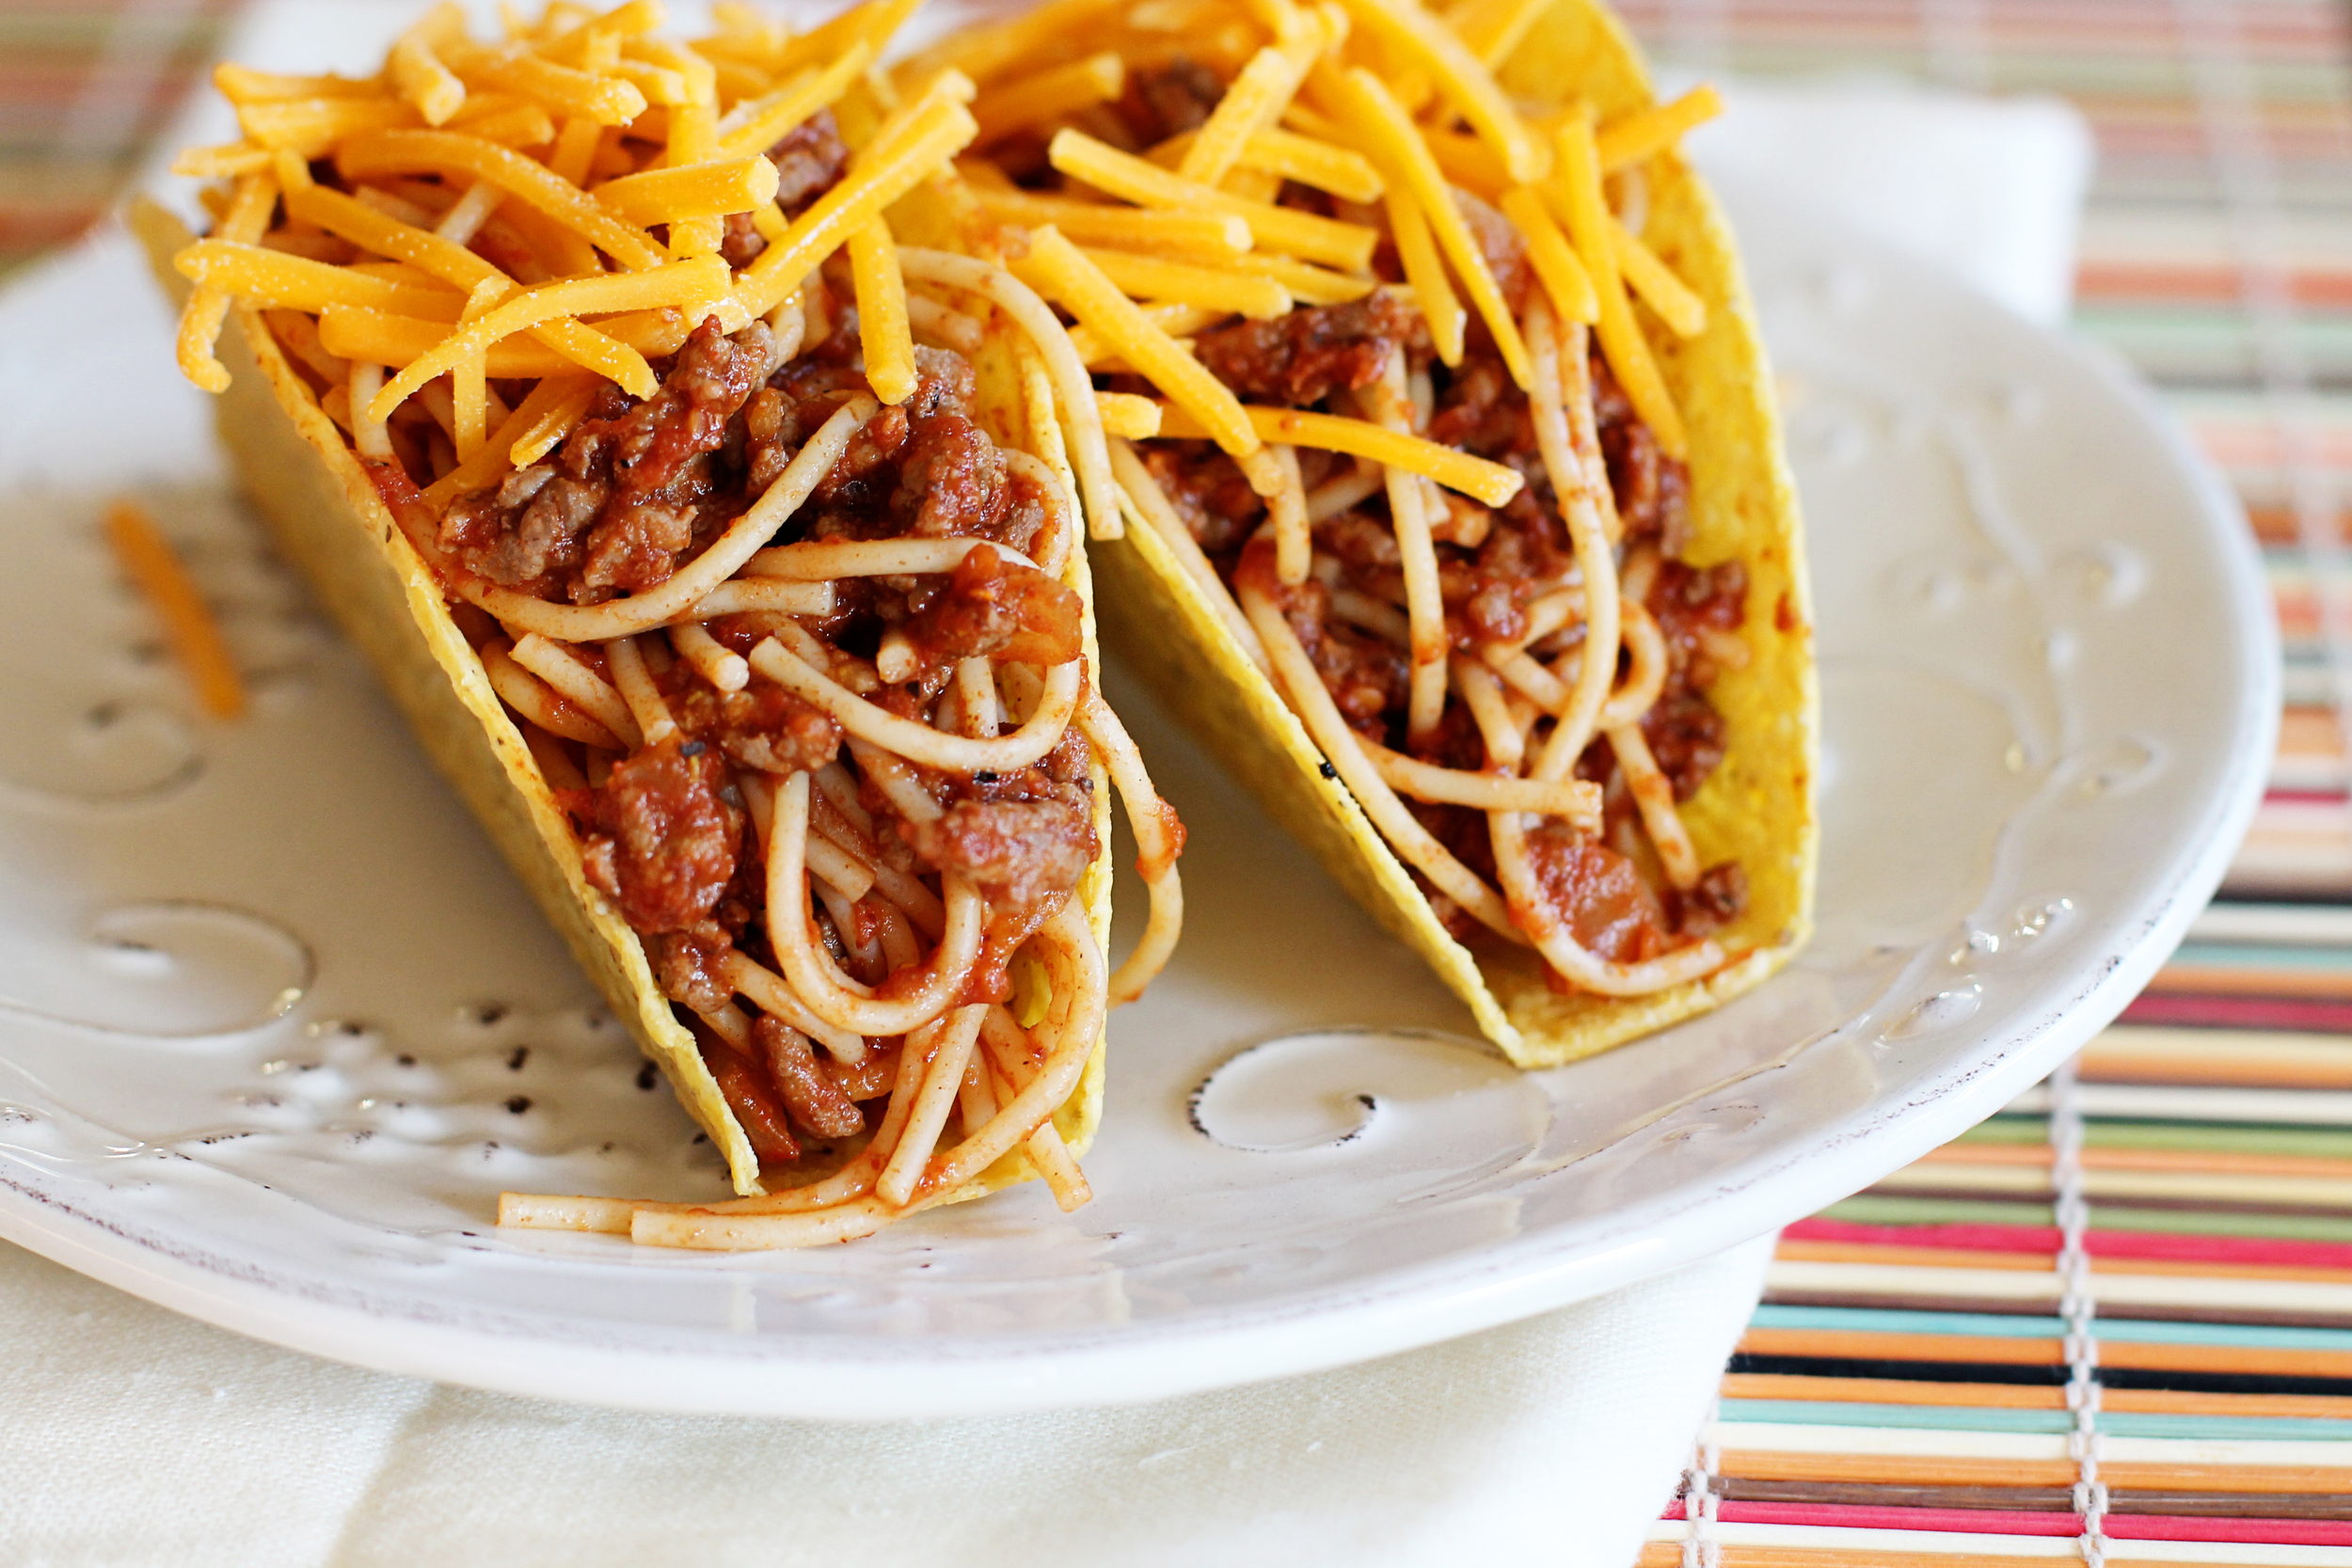 Spaghetti Tacos Jw Illustrations